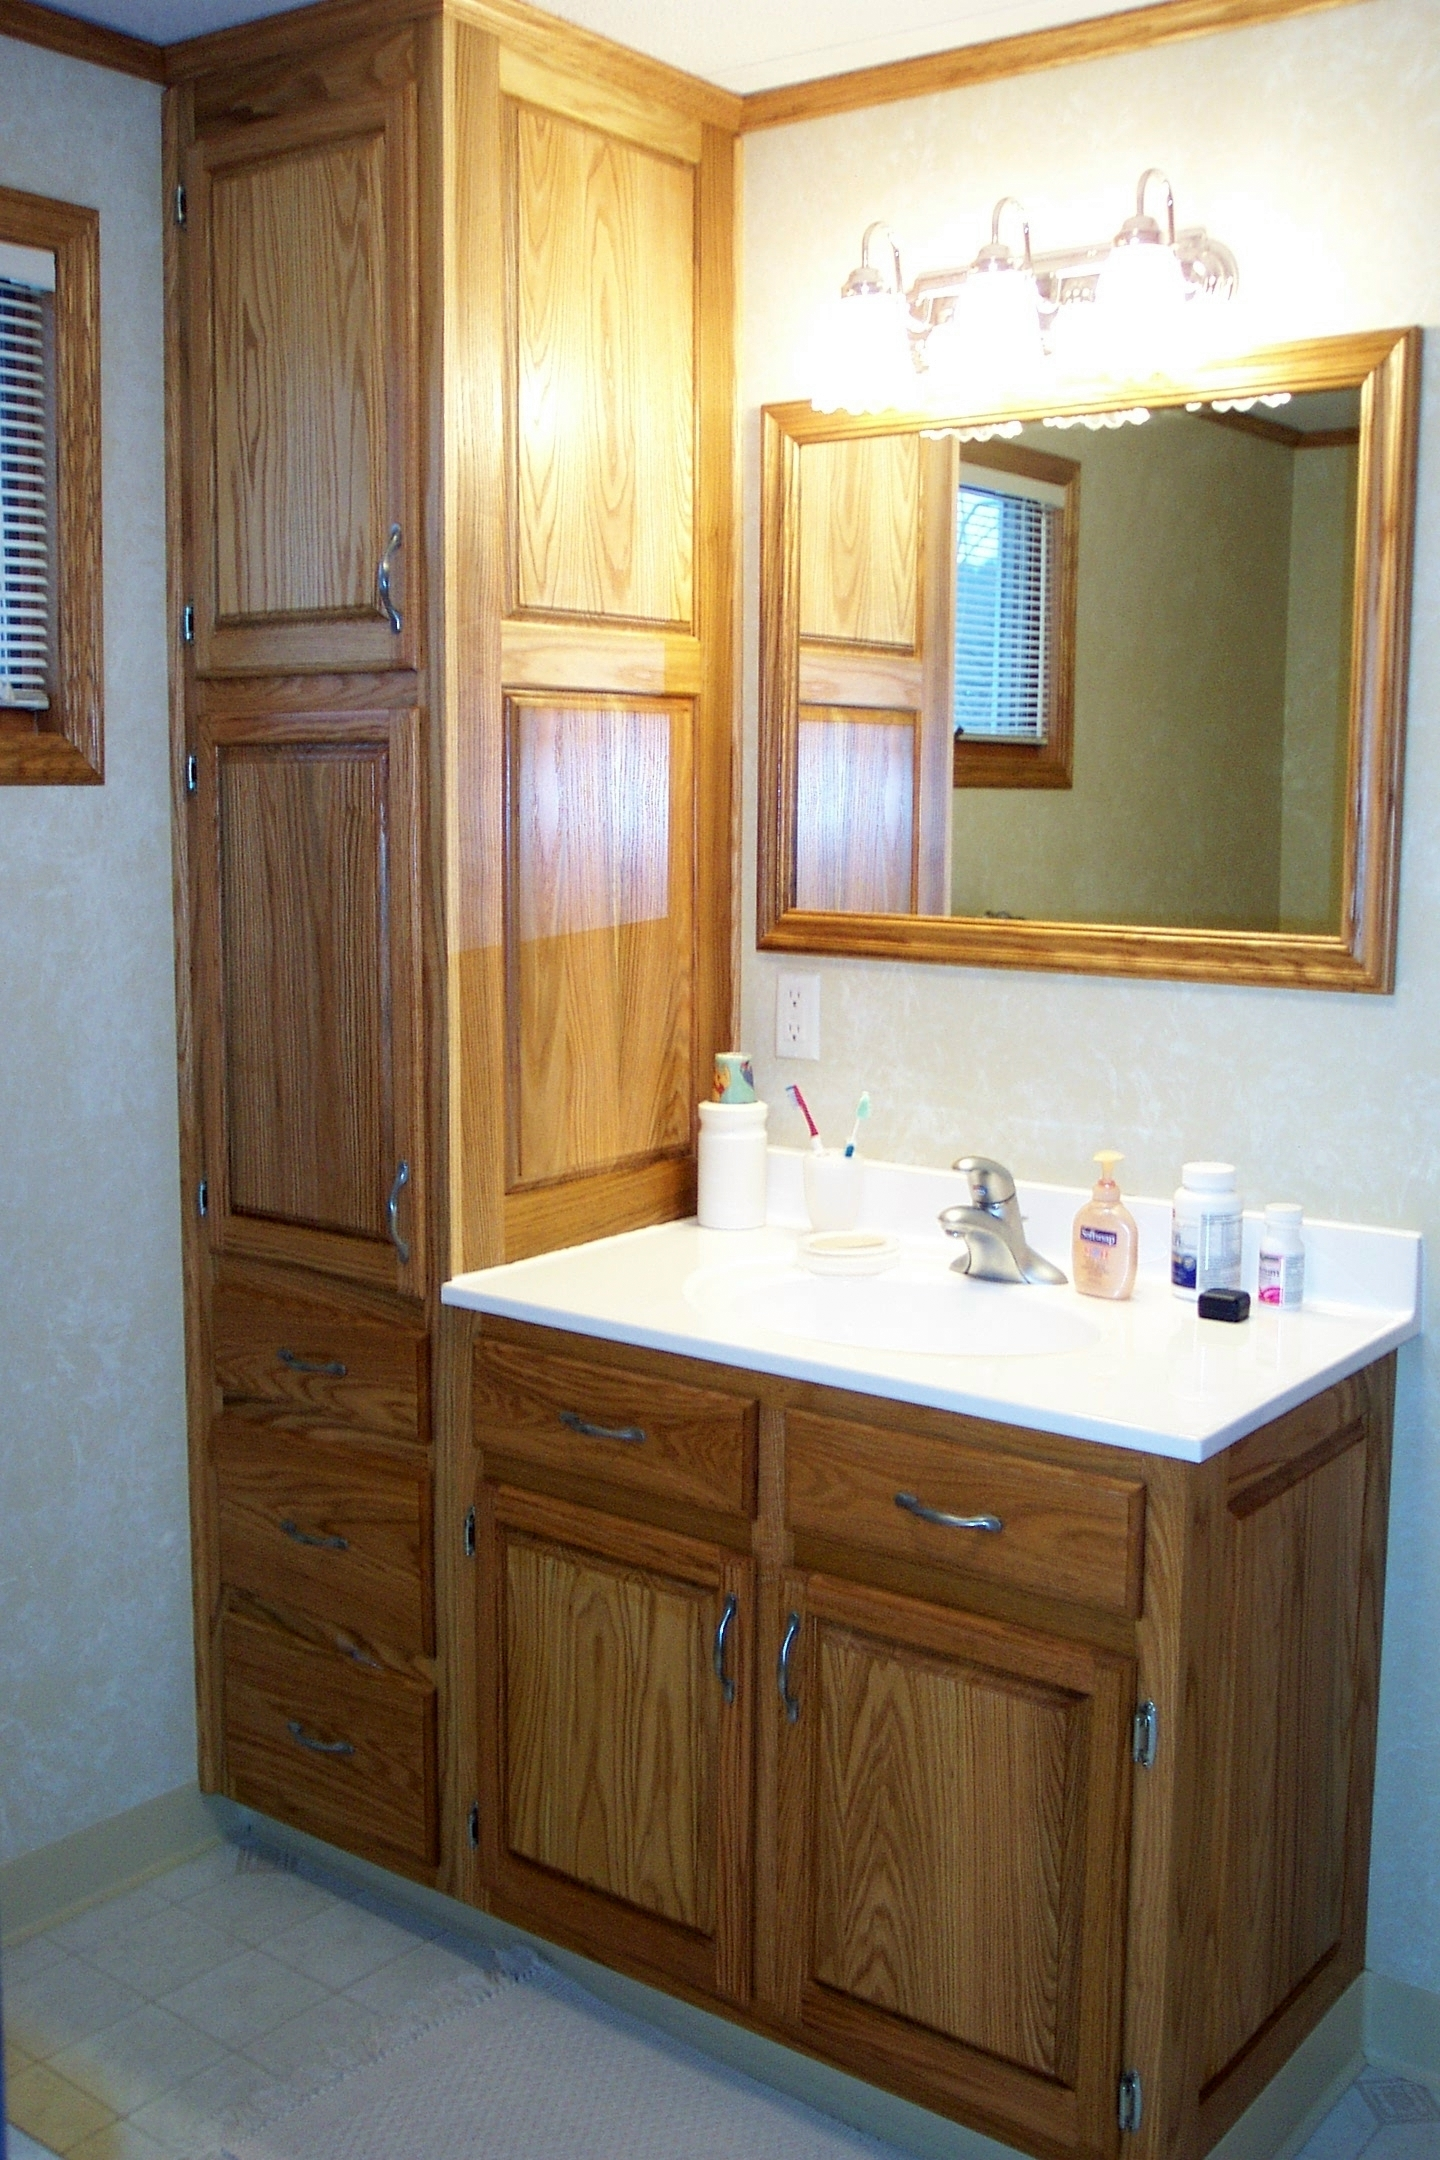 Permalink to Bathroom Cabinets With Storage